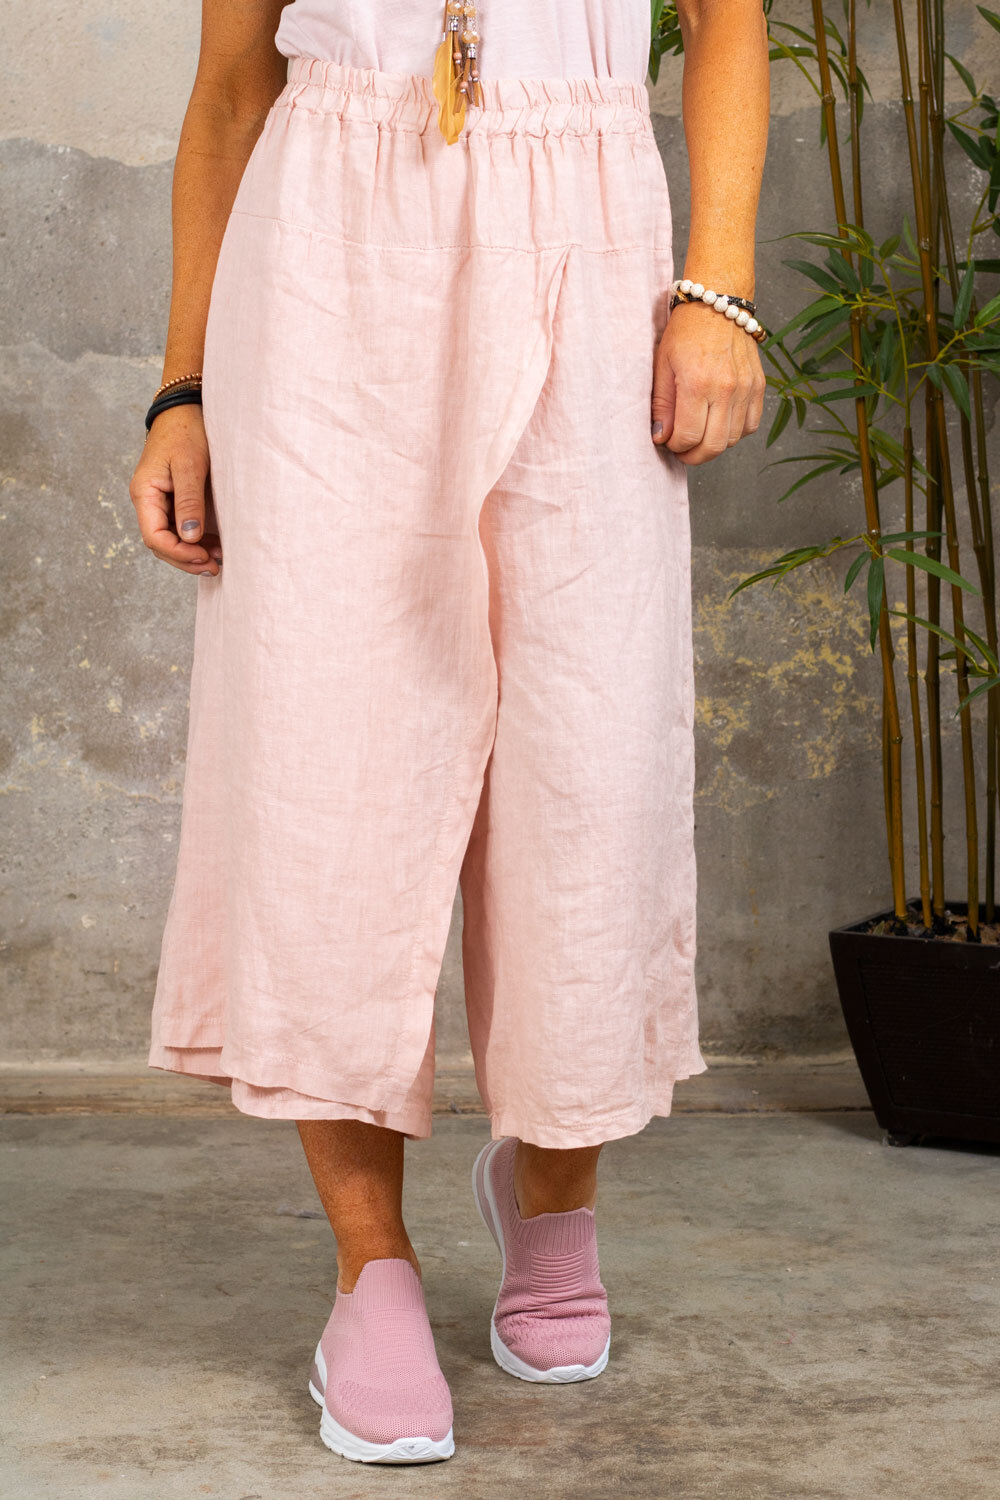 Linen trousers - Wrap - Old pink